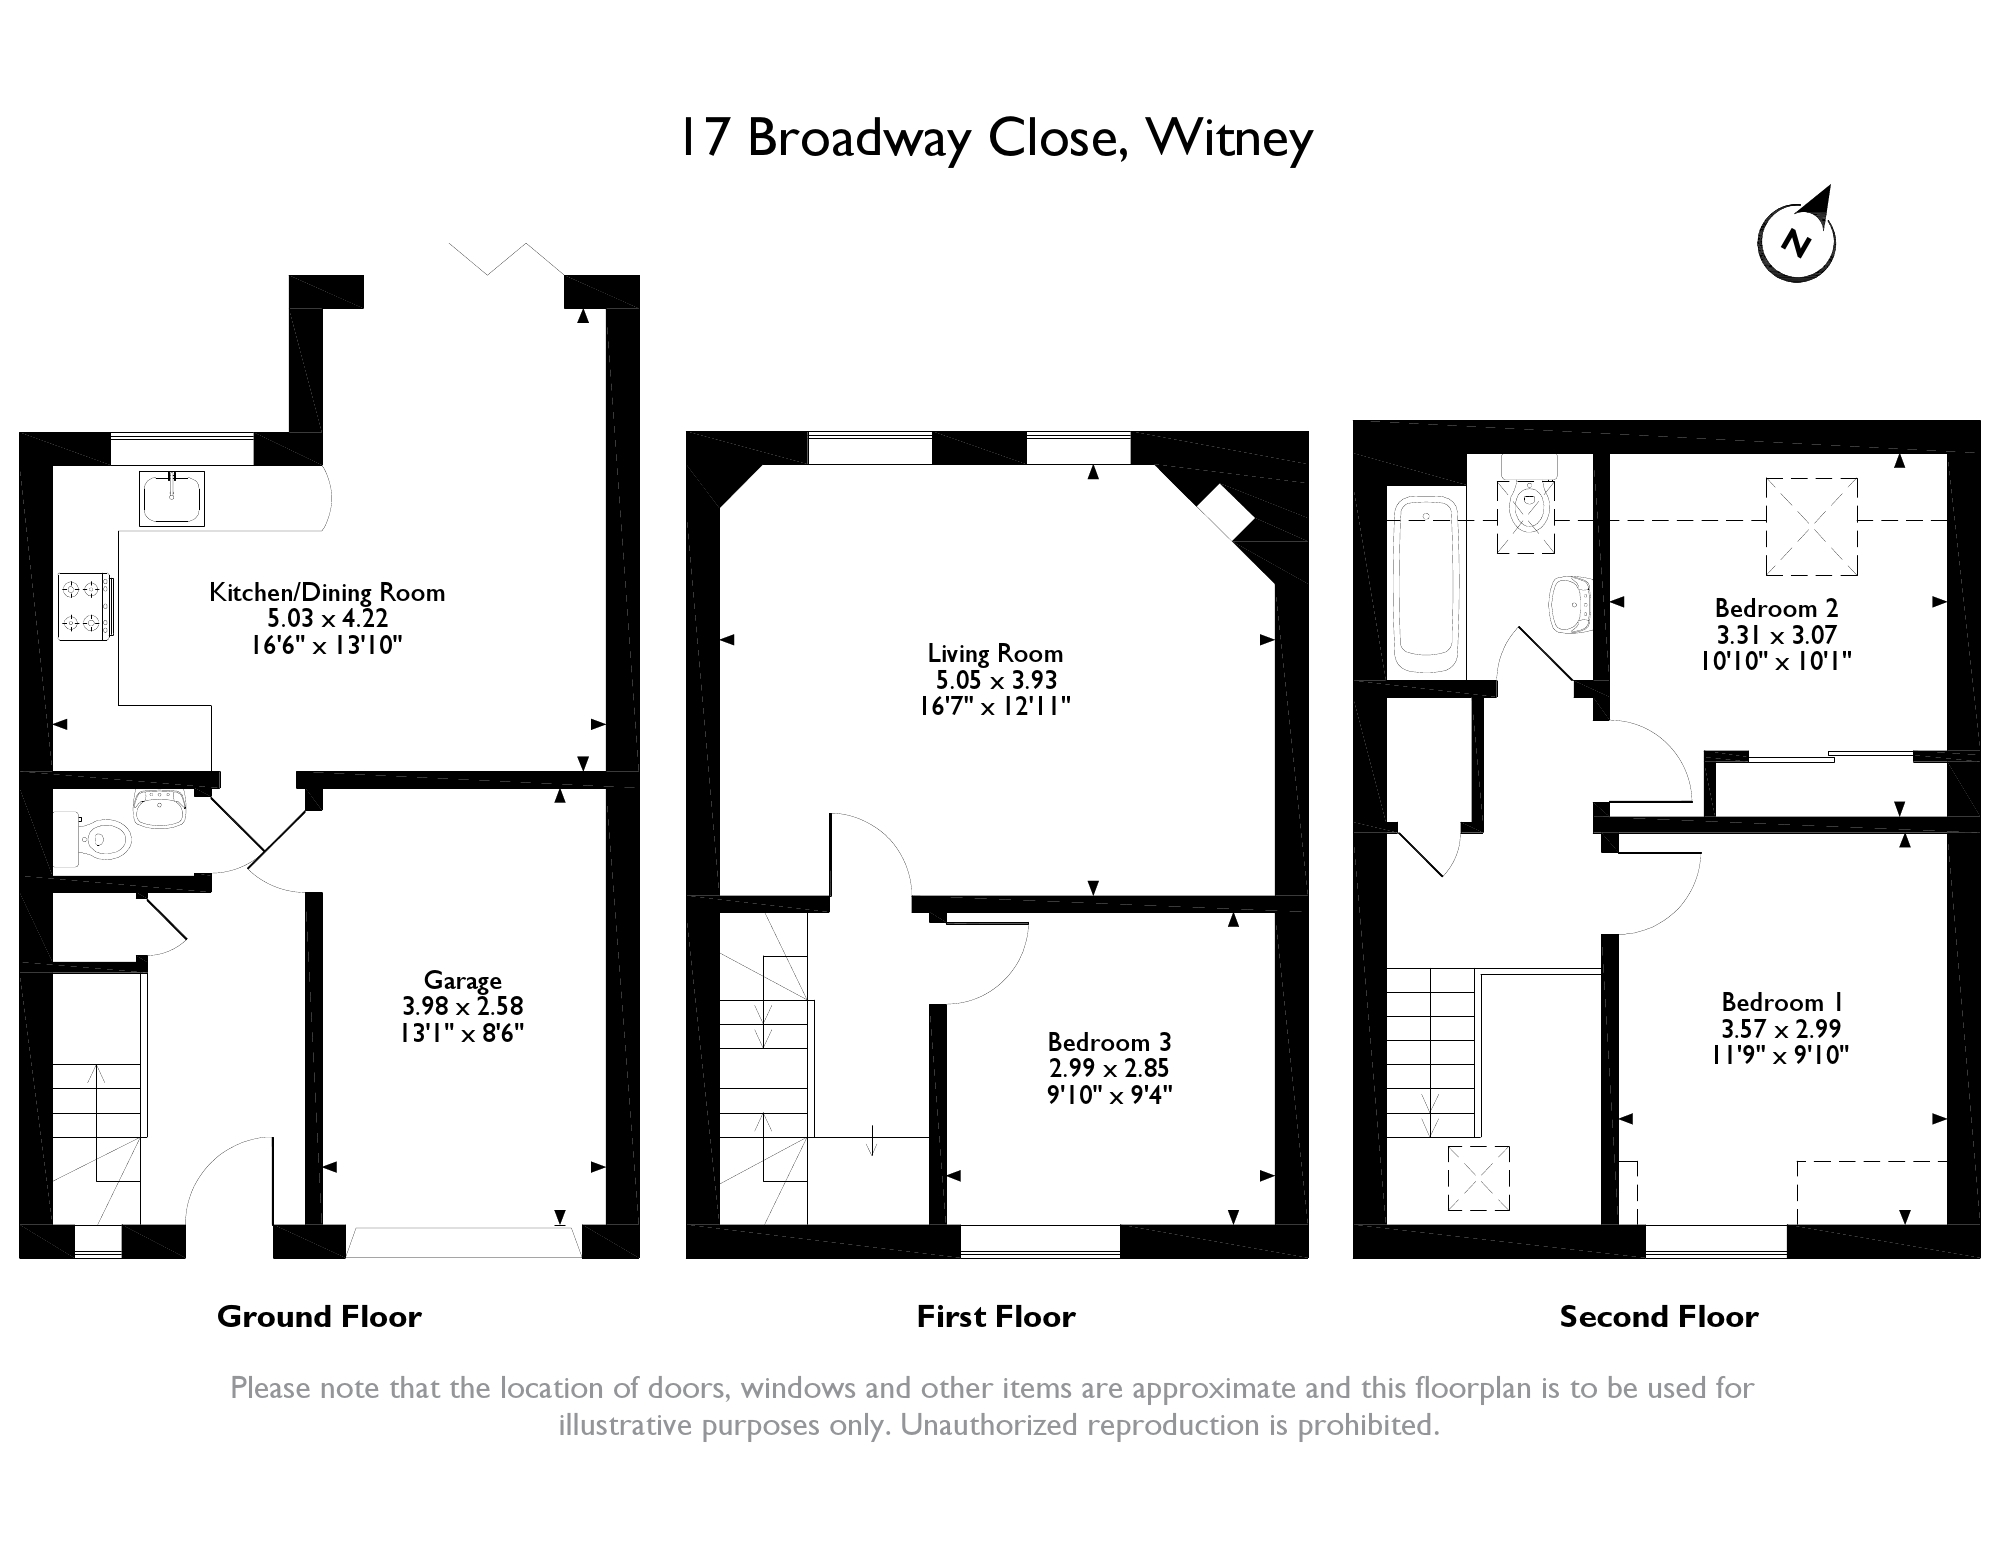 Broadway Close,  Witney, Oxfordshire floor plan